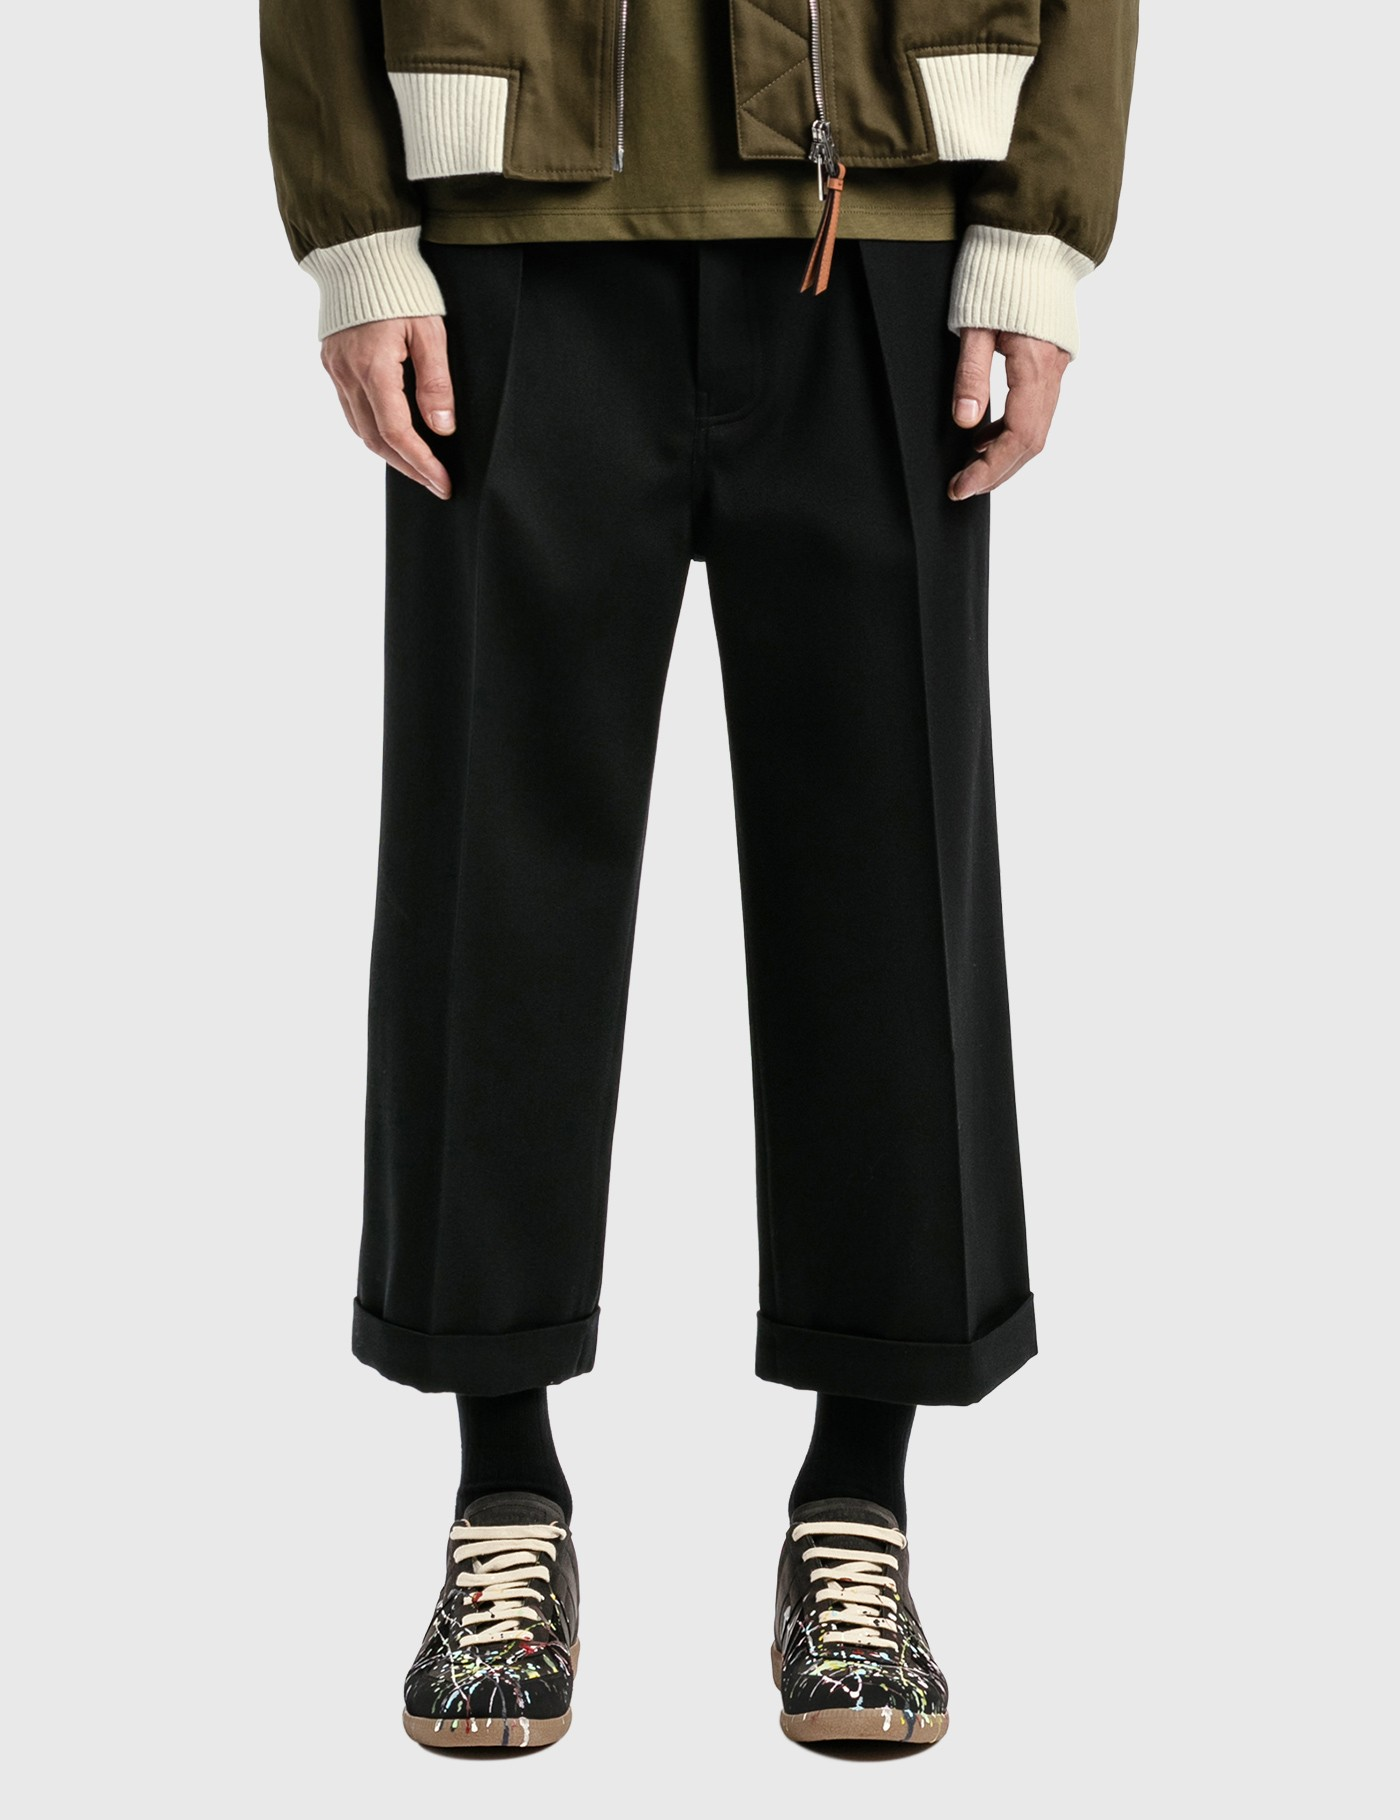 Loewe Flared pants CROPPED FLARE TROUSERS